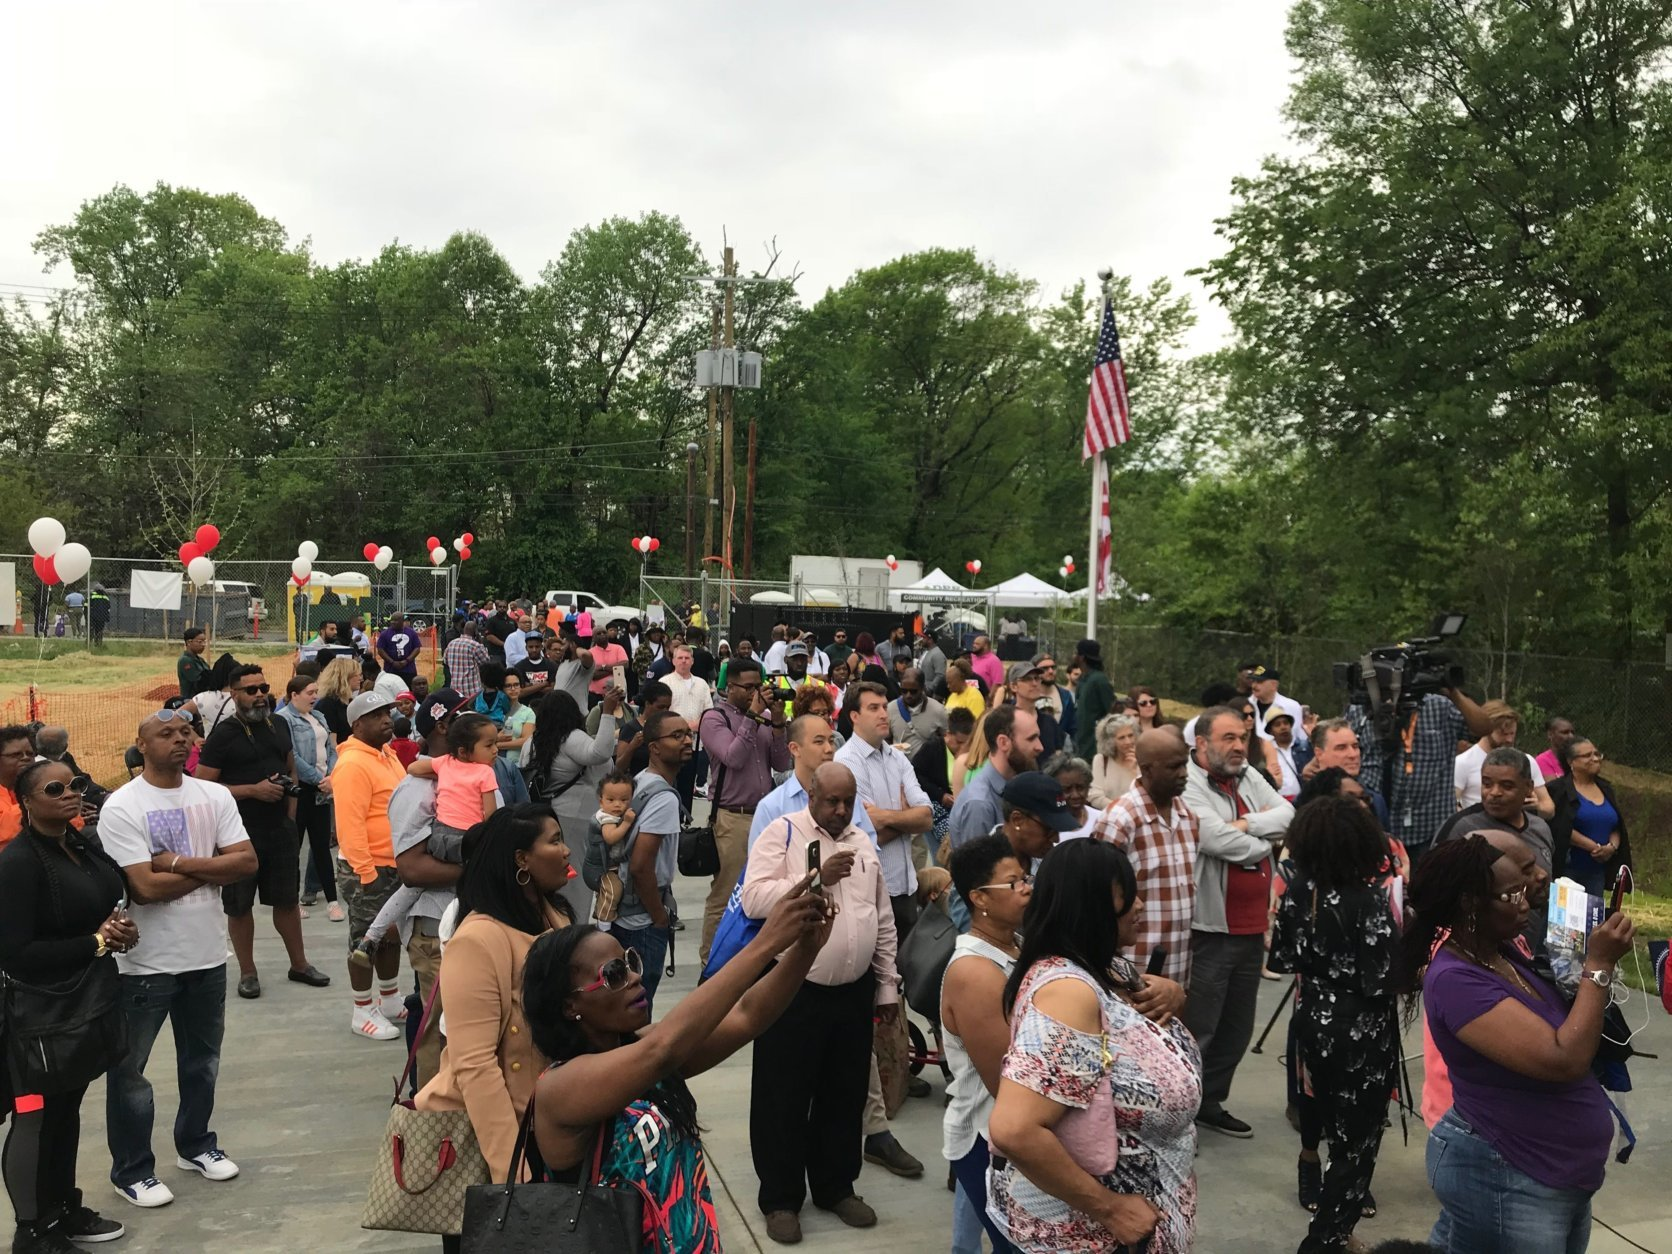 People attend the dedication of the Marvin Gaye Recreation Center in D.C. on Saturday, May 5, 2018. (WTOP/Dick Uliano)